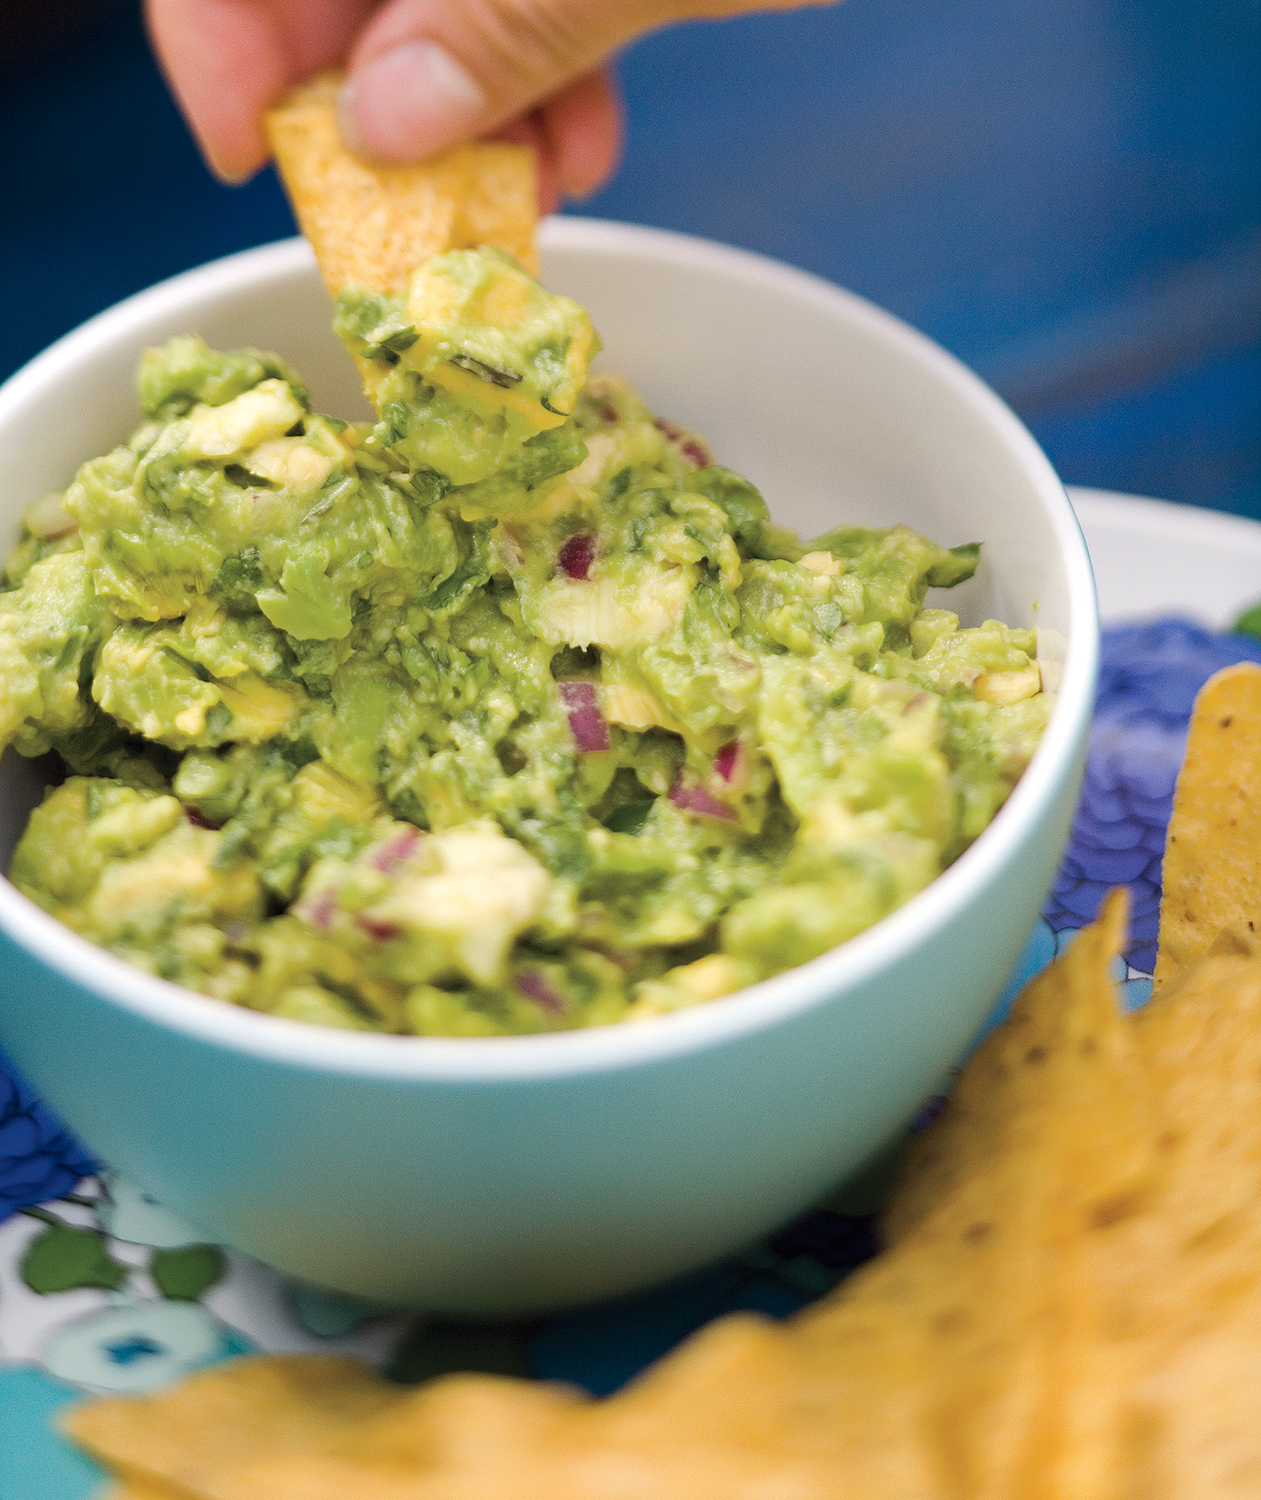 Super Bowl Snacks: Guacamole and Chips